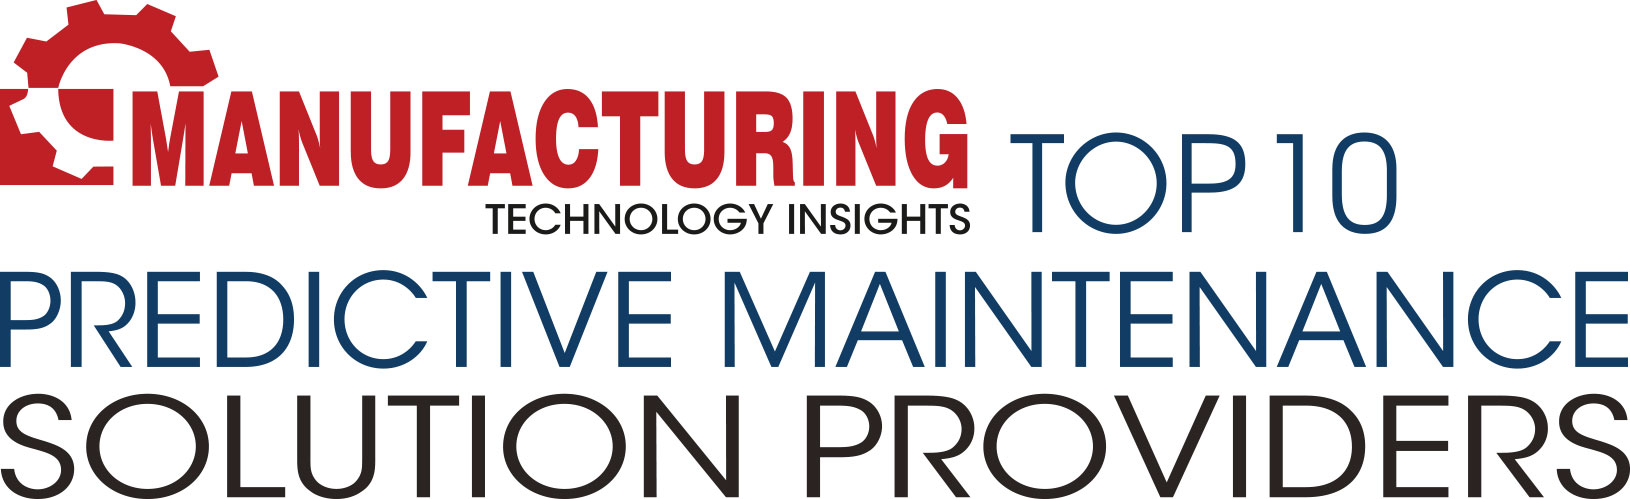 Top 10 Predictive Maintenance Solution Companies - 2019